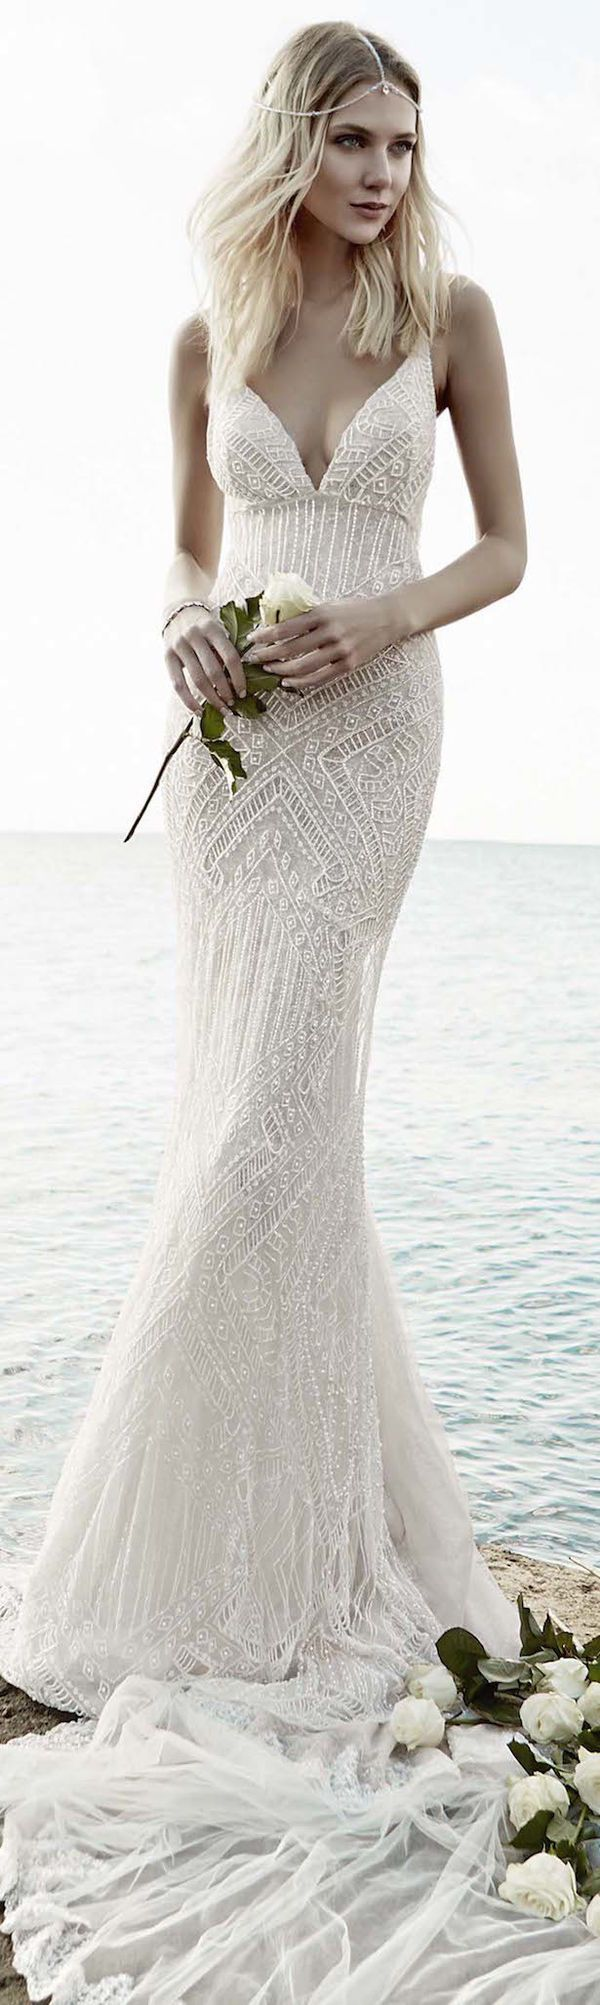 If you love simple dresses but are afraid of being a forgettable bride, keep the cut classic while indulging in the detailed fabric trend. Whether it's stitching, beading, or embroidery, add some pizzazz without taking away from your timeless bridal look.